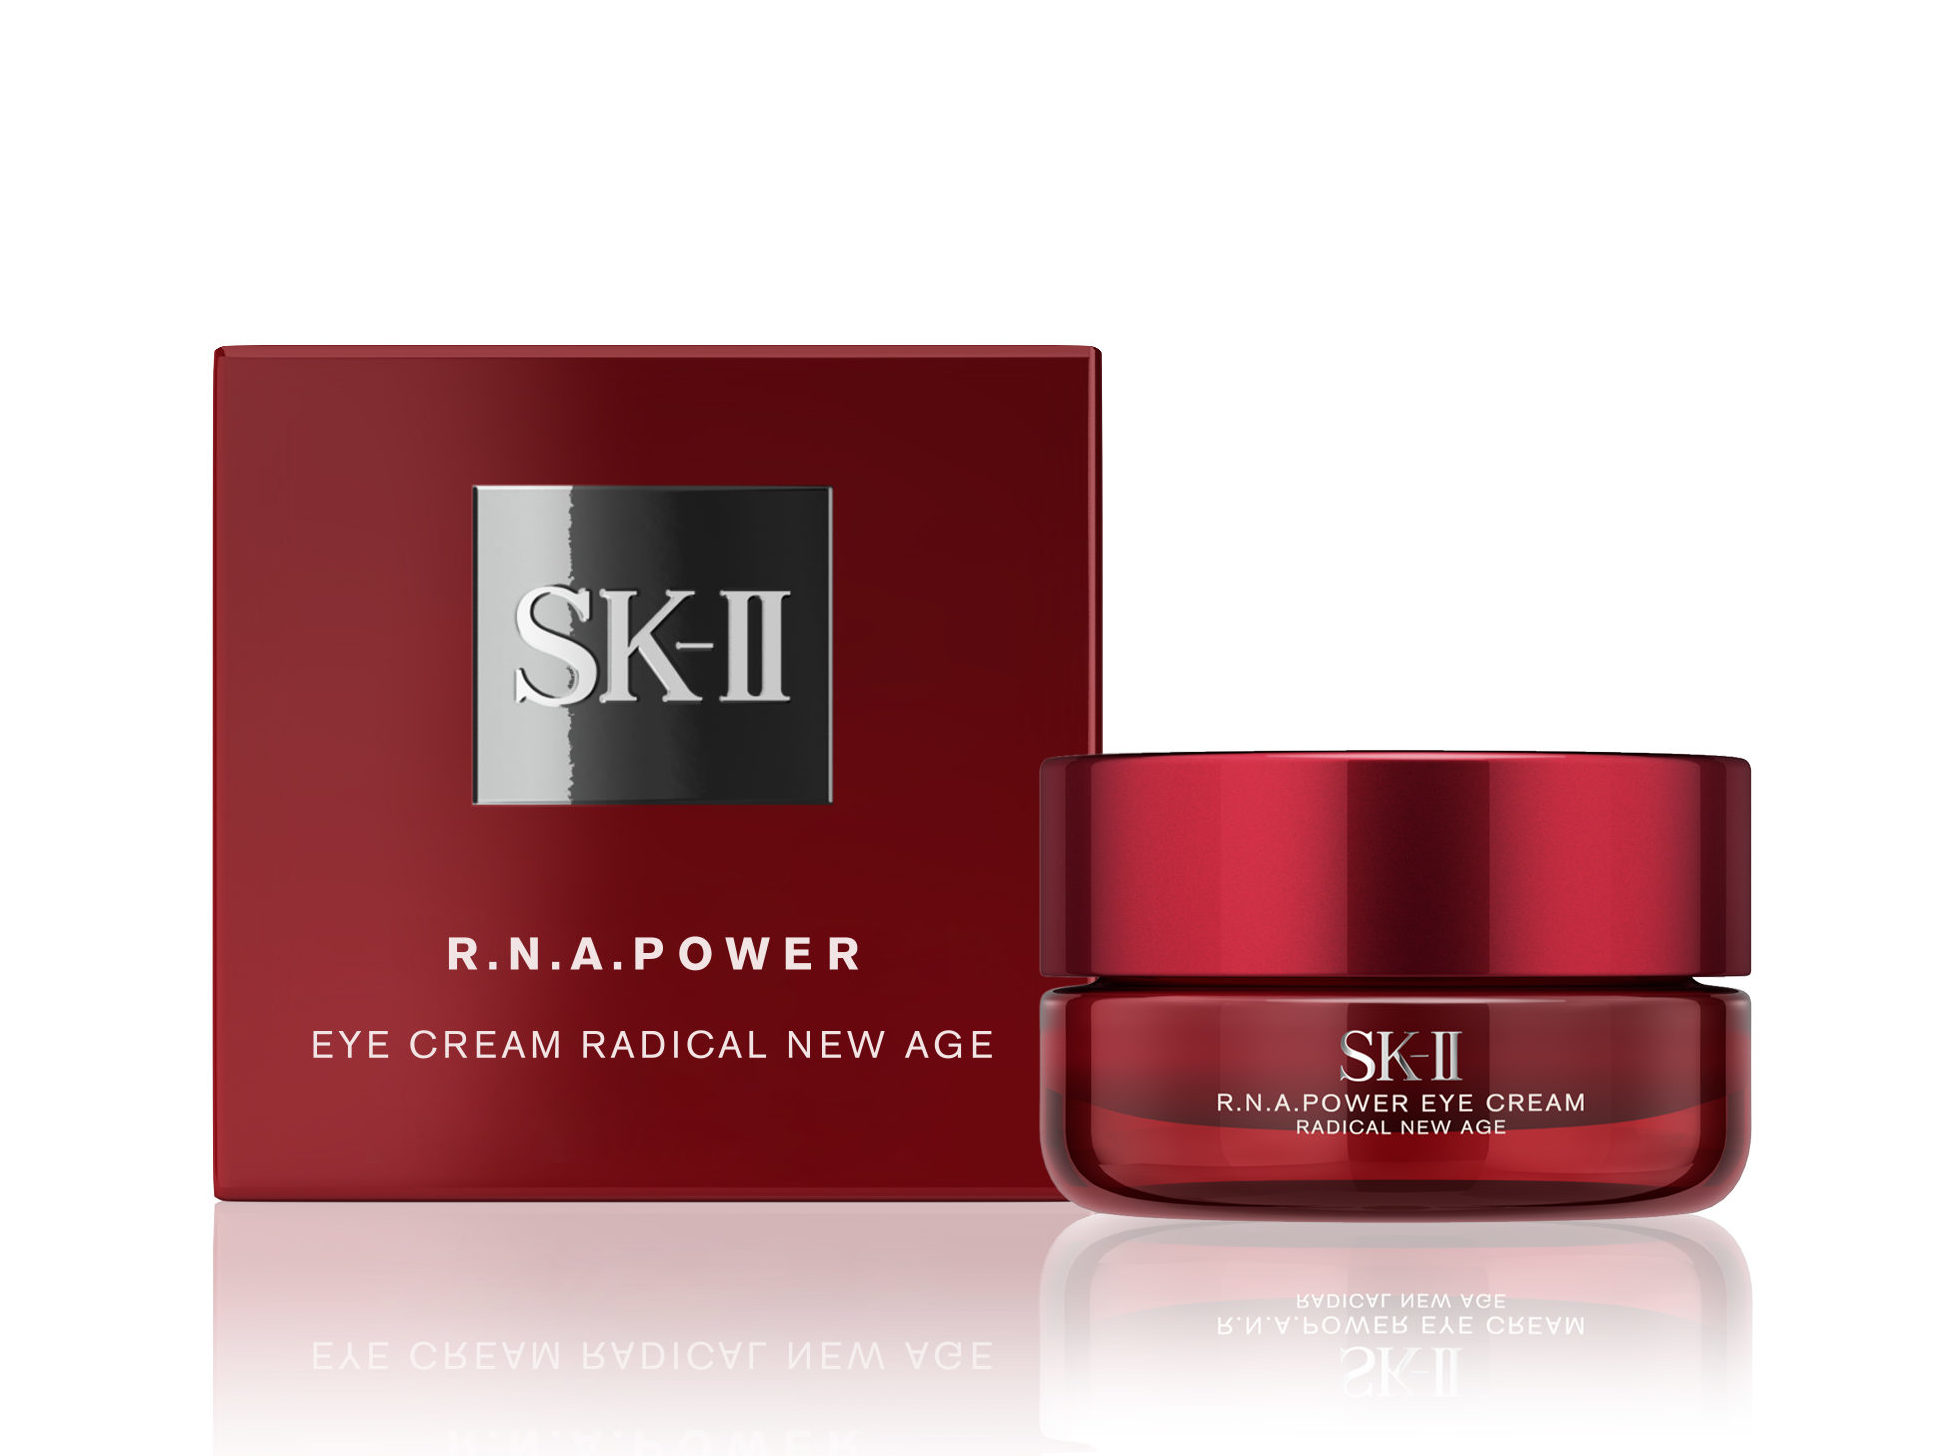 SKII RNA Power Eye Cream